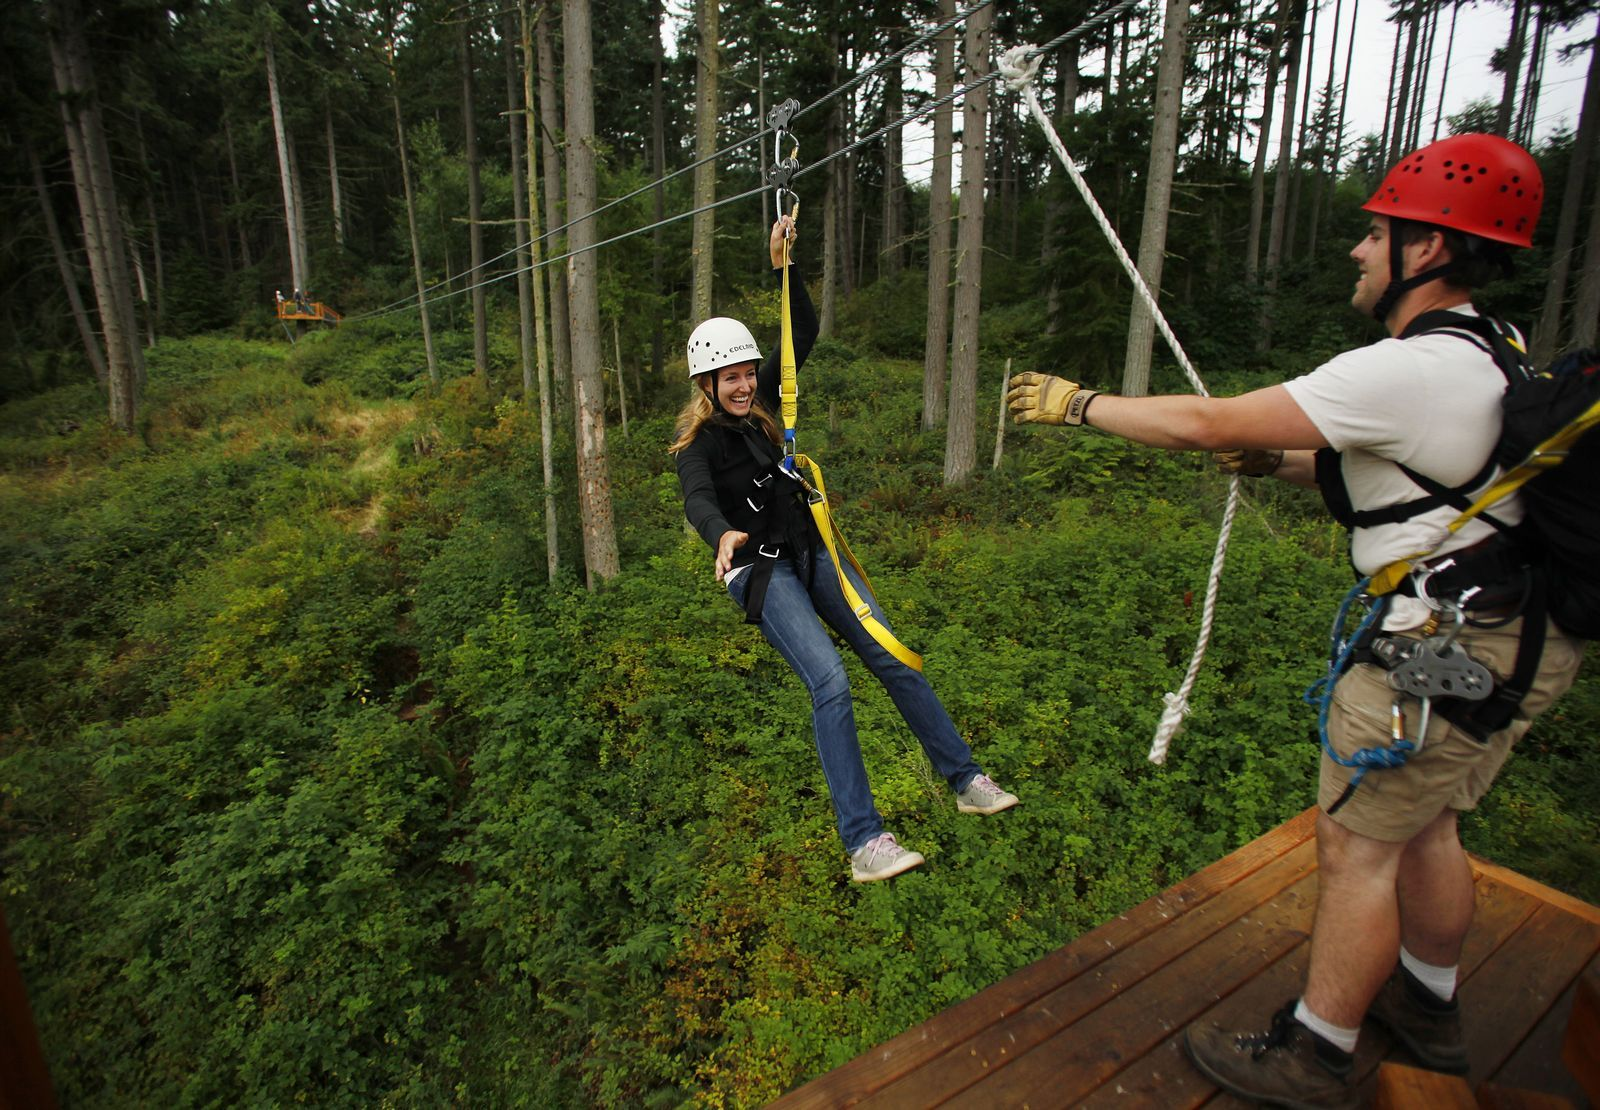 Mark Mulligan / The Herald, 2011 fileJulia Kristoferson smiles as she zips onto a platform manned by guide Jack Dawe while zip-lining Aug. 29, 2011, at the Kristoferson farm.